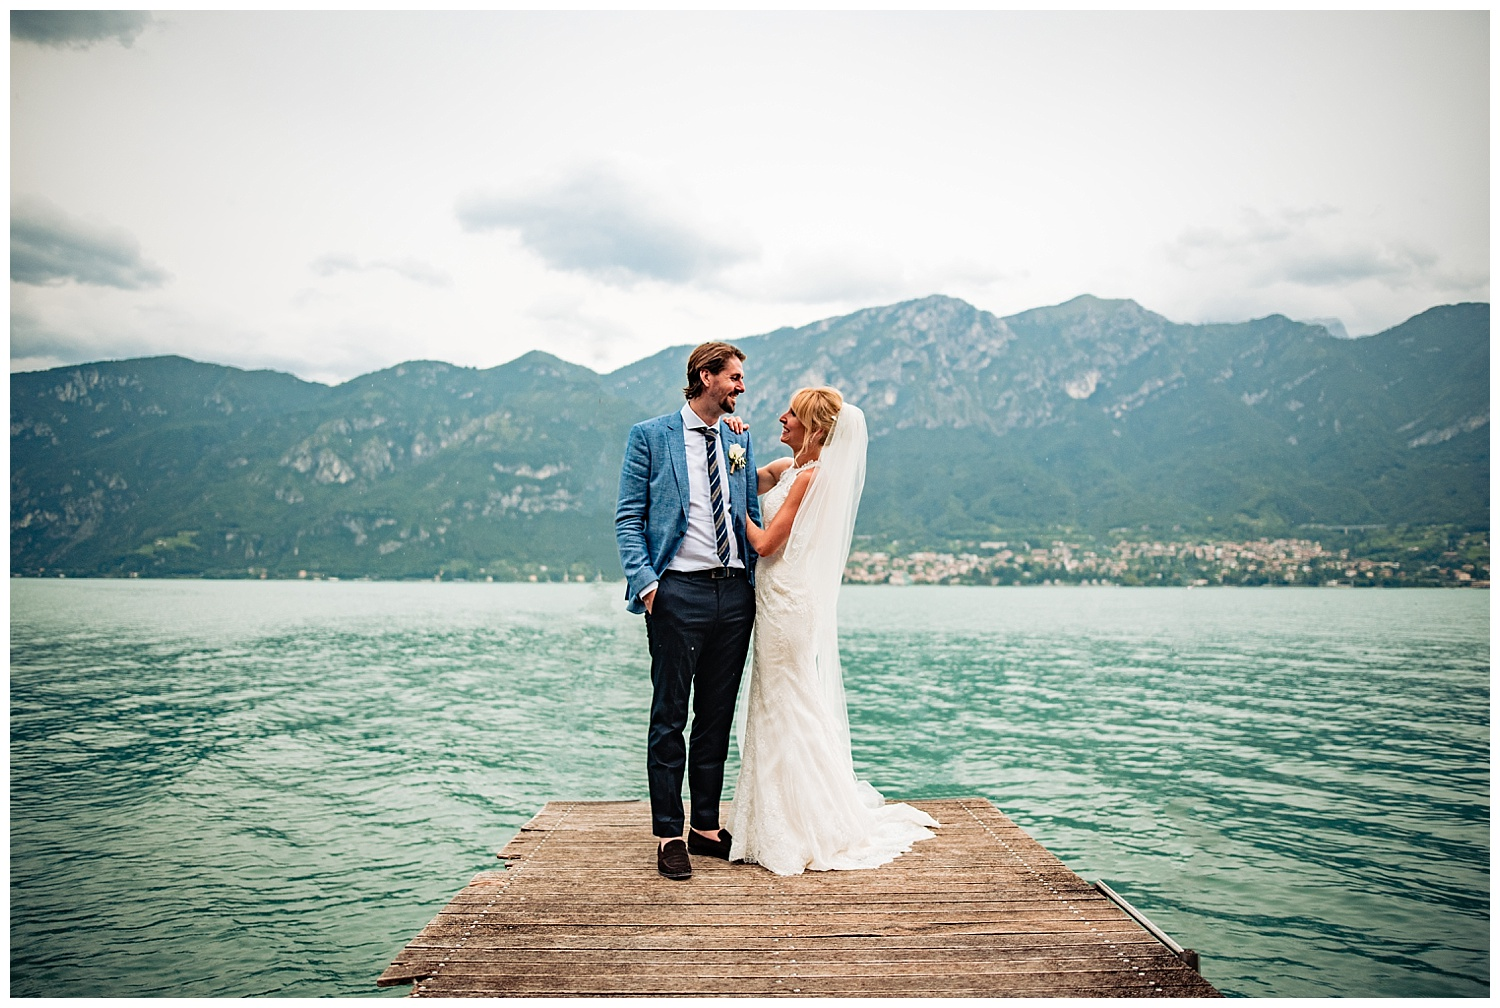 Lake Como, Italy Wedding photographer